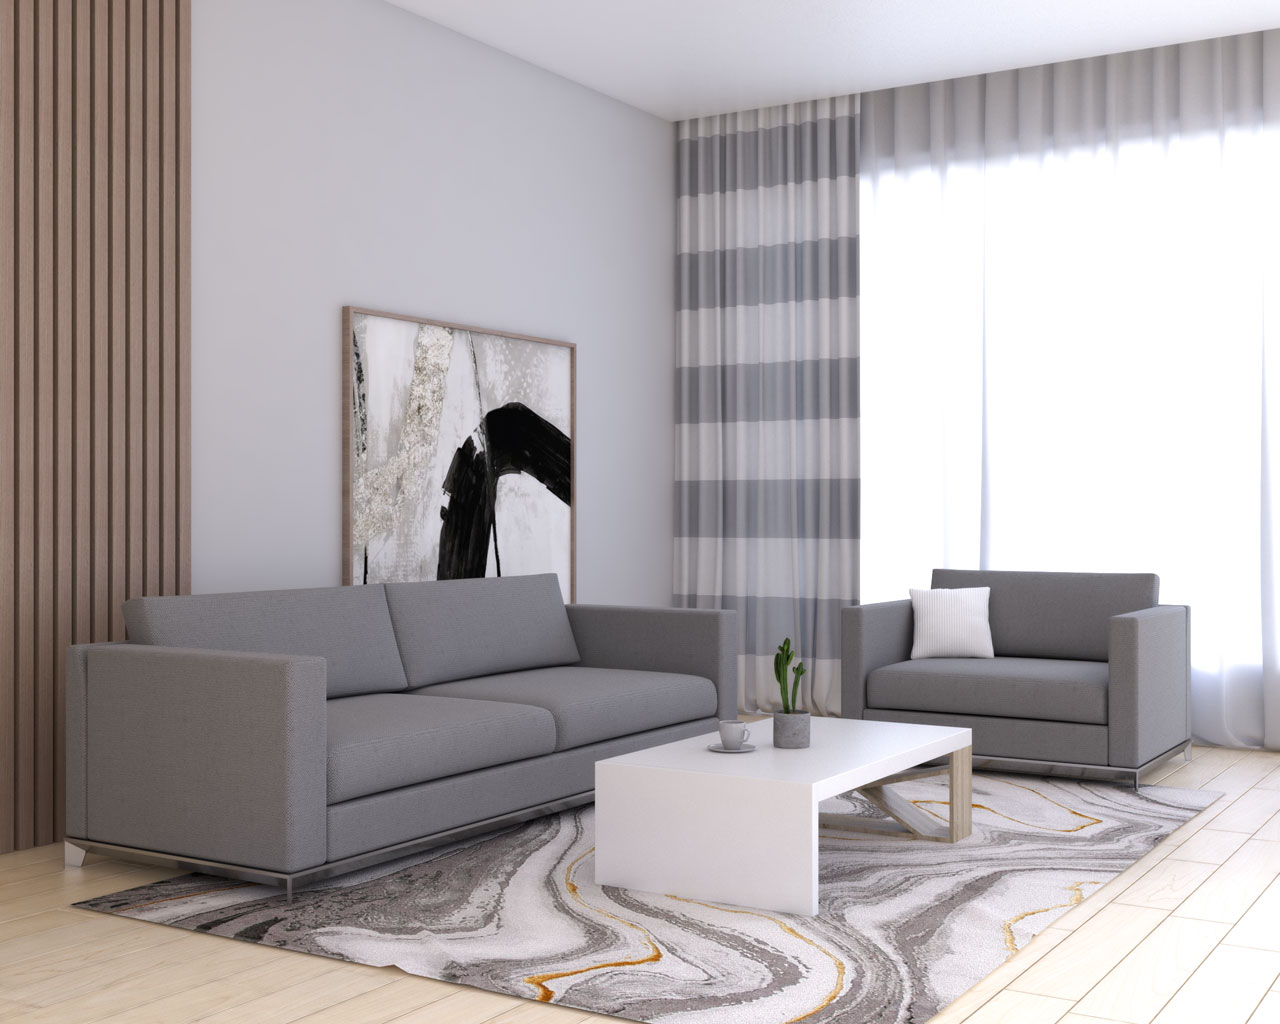 Gray and white curtains in living room with gray furniture